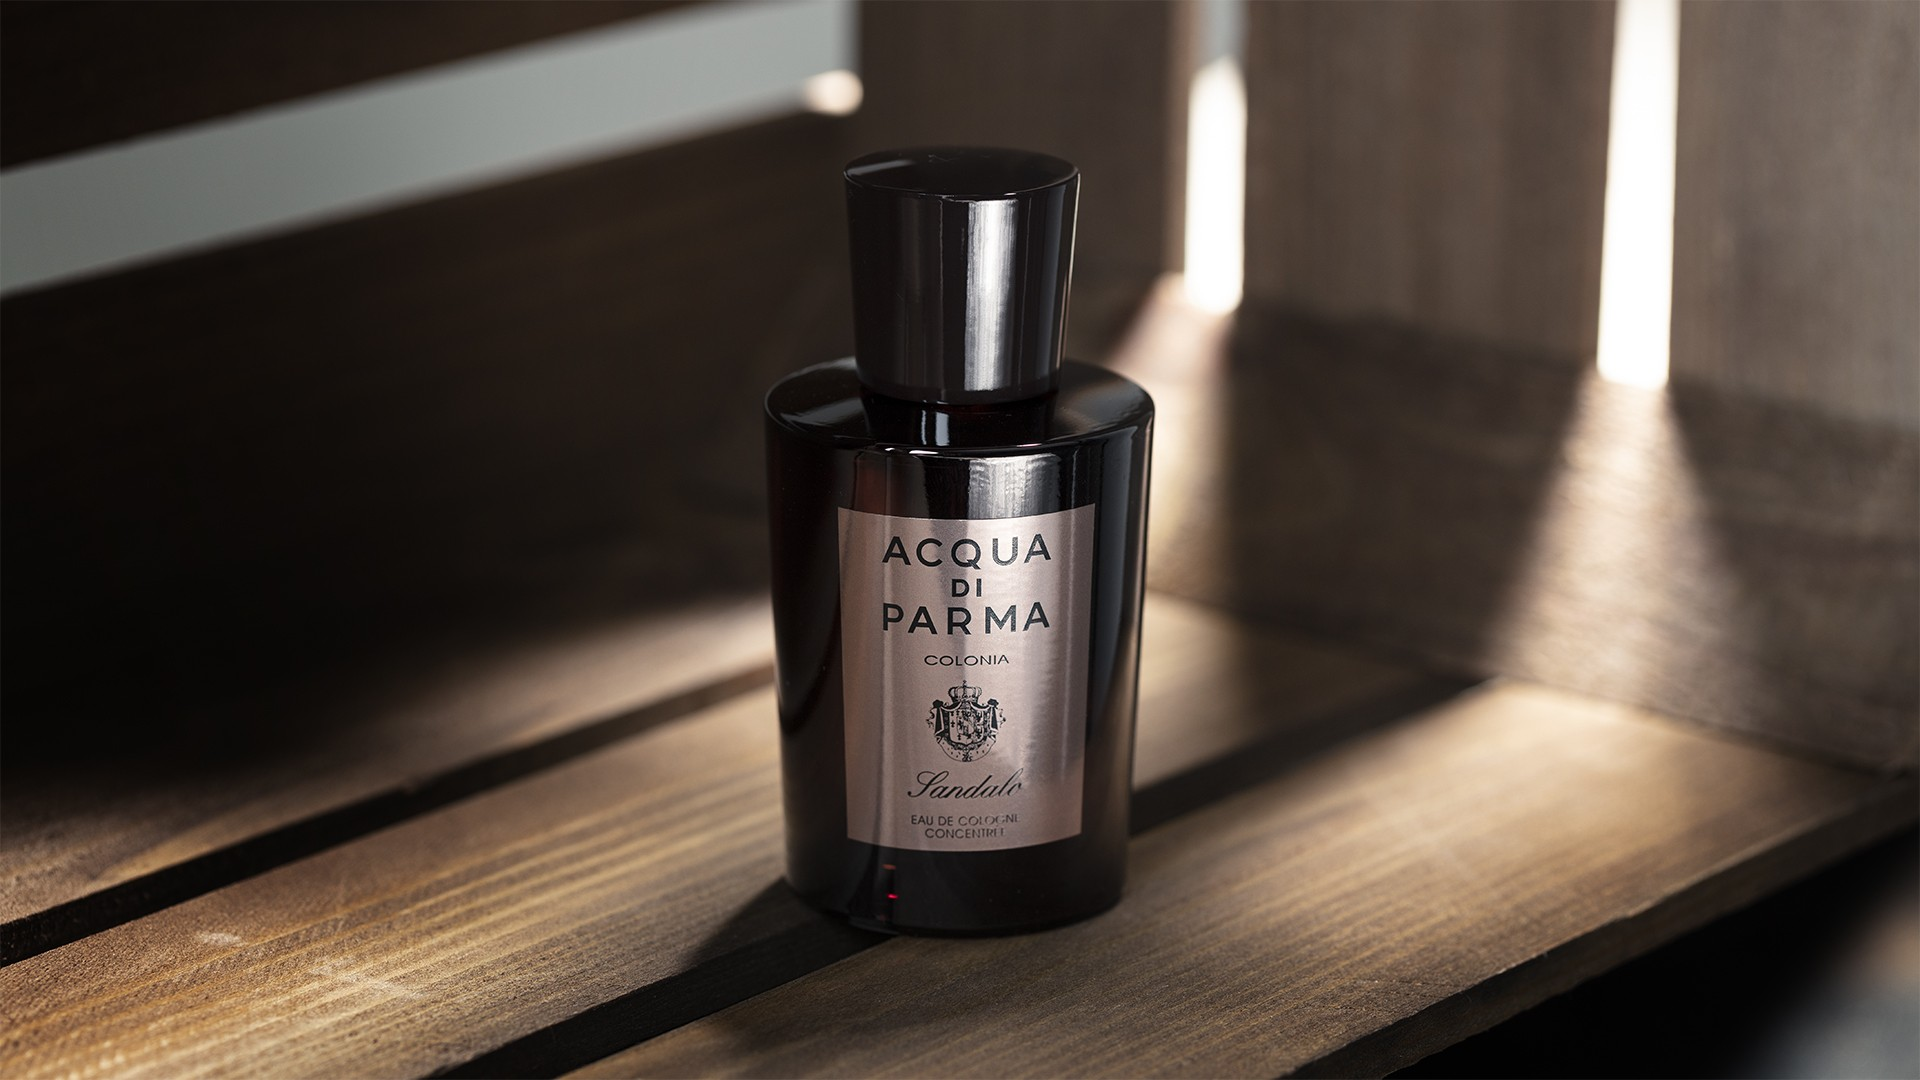 Acqua di Parma Sandalo men's fragrance